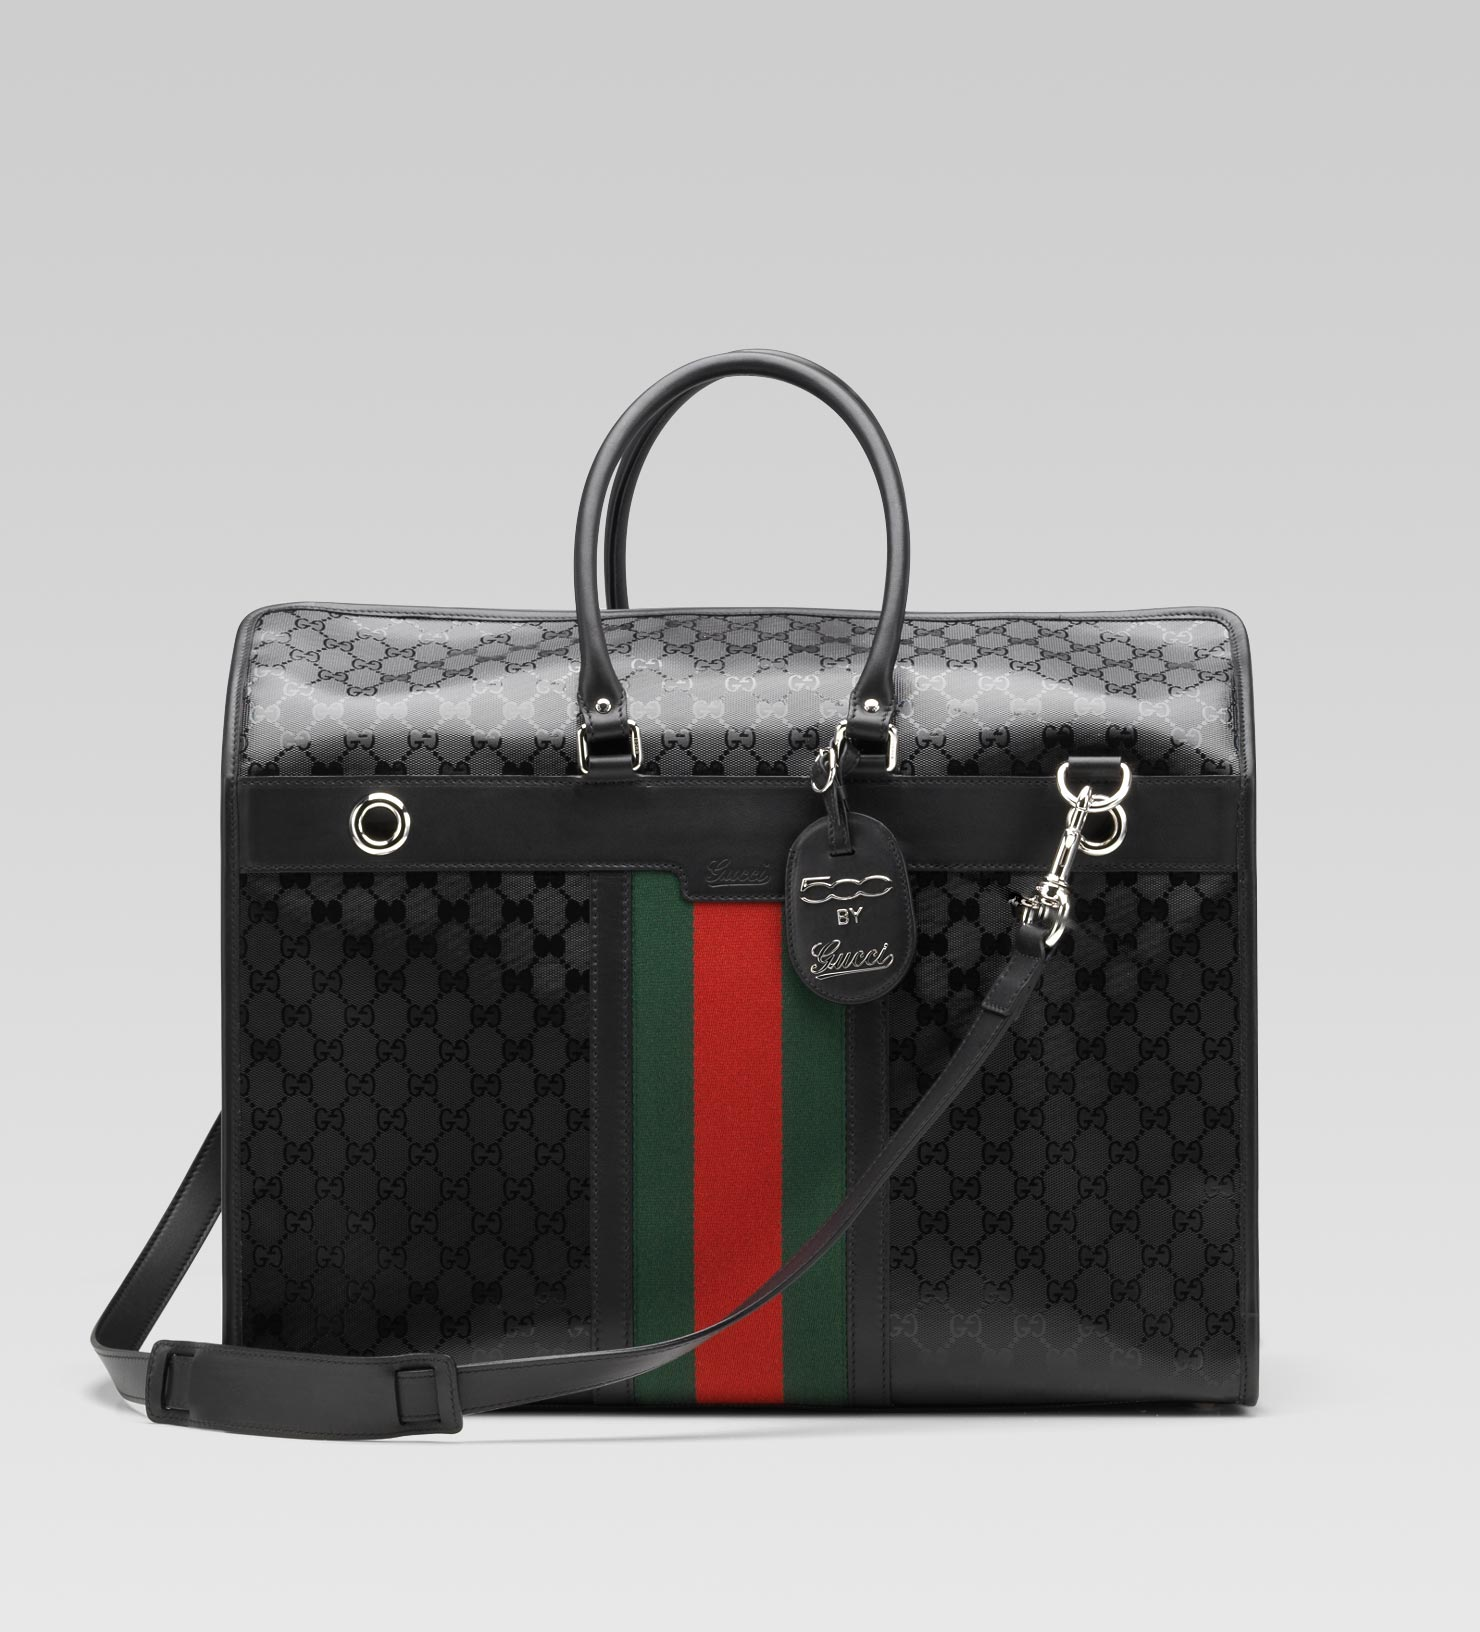 253540a1c1cdbe Gucci Dog Carrier in Black for Men - Lyst